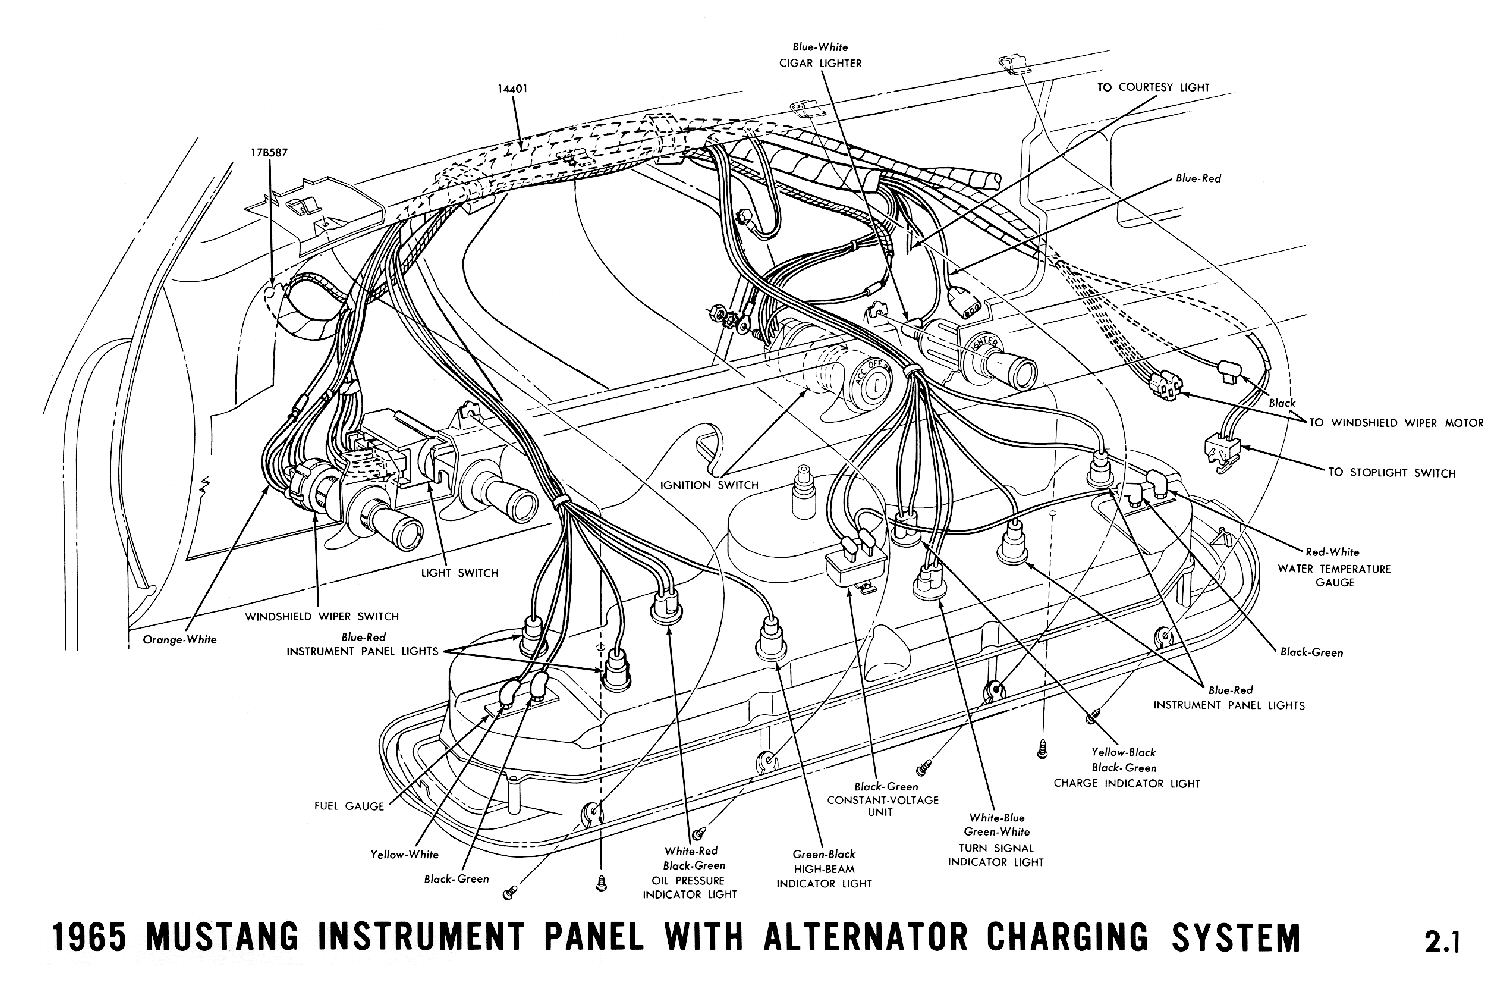 66 Mustang Dash Wiring Diagram - Wiring Diagram G8 on honda wiring diagram, beta wiring diagram, ajs wiring diagram, mercury wiring diagram, husaberg wiring diagram, international wiring diagram, kawasaki wiring diagram, dodge wiring diagram, nissan wiring diagram, ossa wiring diagram, garelli wiring diagram, bajaj wiring diagram, naza wiring diagram, kia wiring diagram, tomos wiring diagram, norton wiring diagram, cf moto wiring diagram, mitsubishi wiring diagram, thor wiring diagram, ariel wiring diagram,